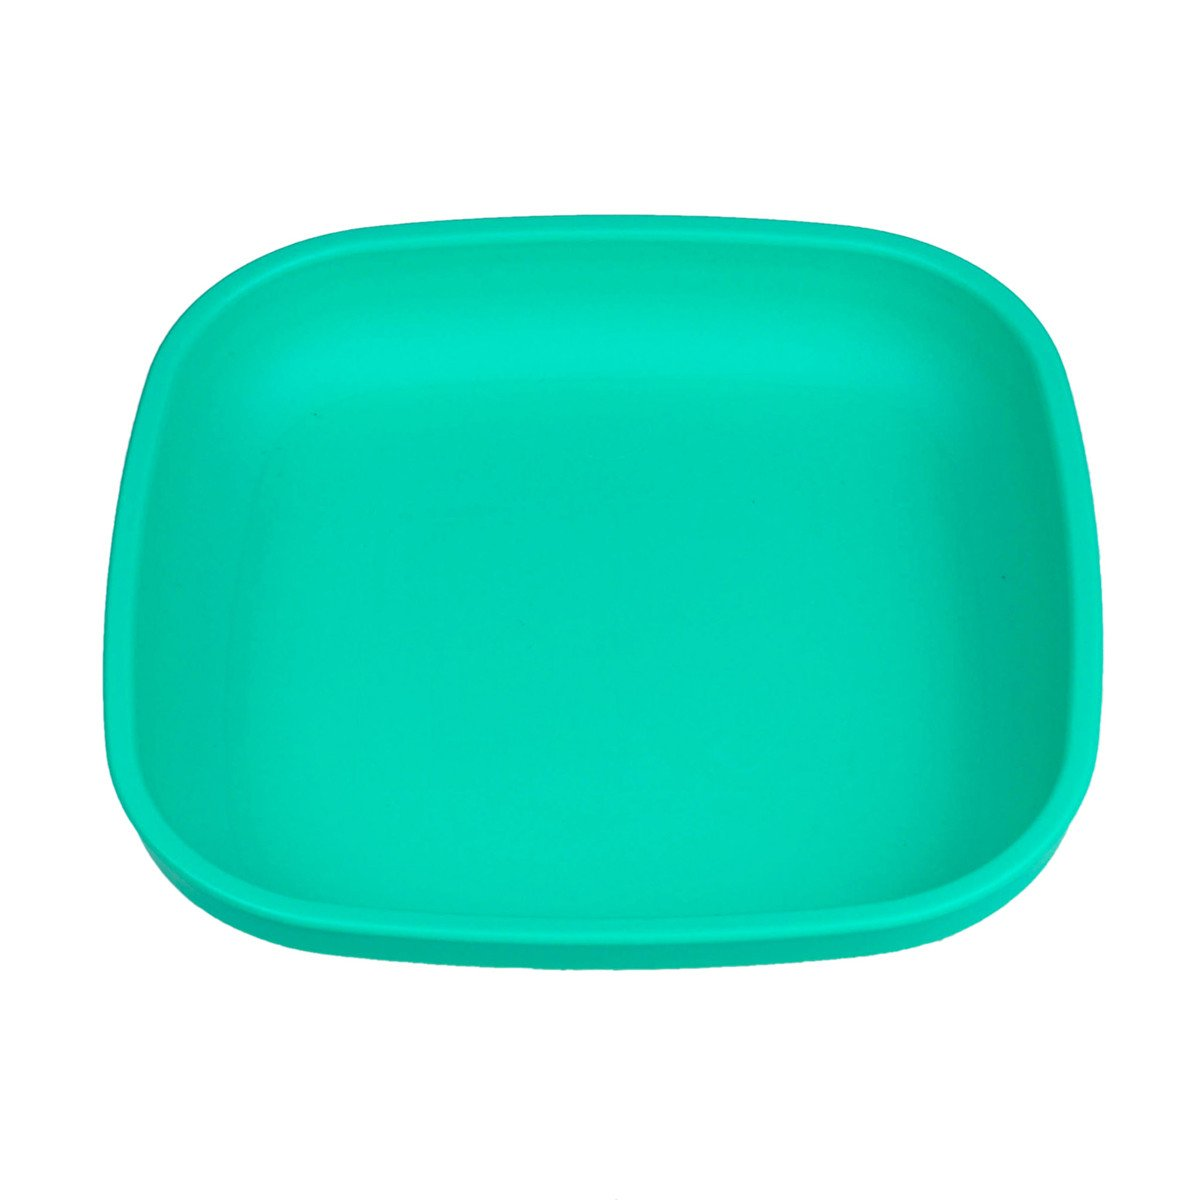 Replay Plate Replay Dinnerware Aqua at Little Earth Nest Eco Shop